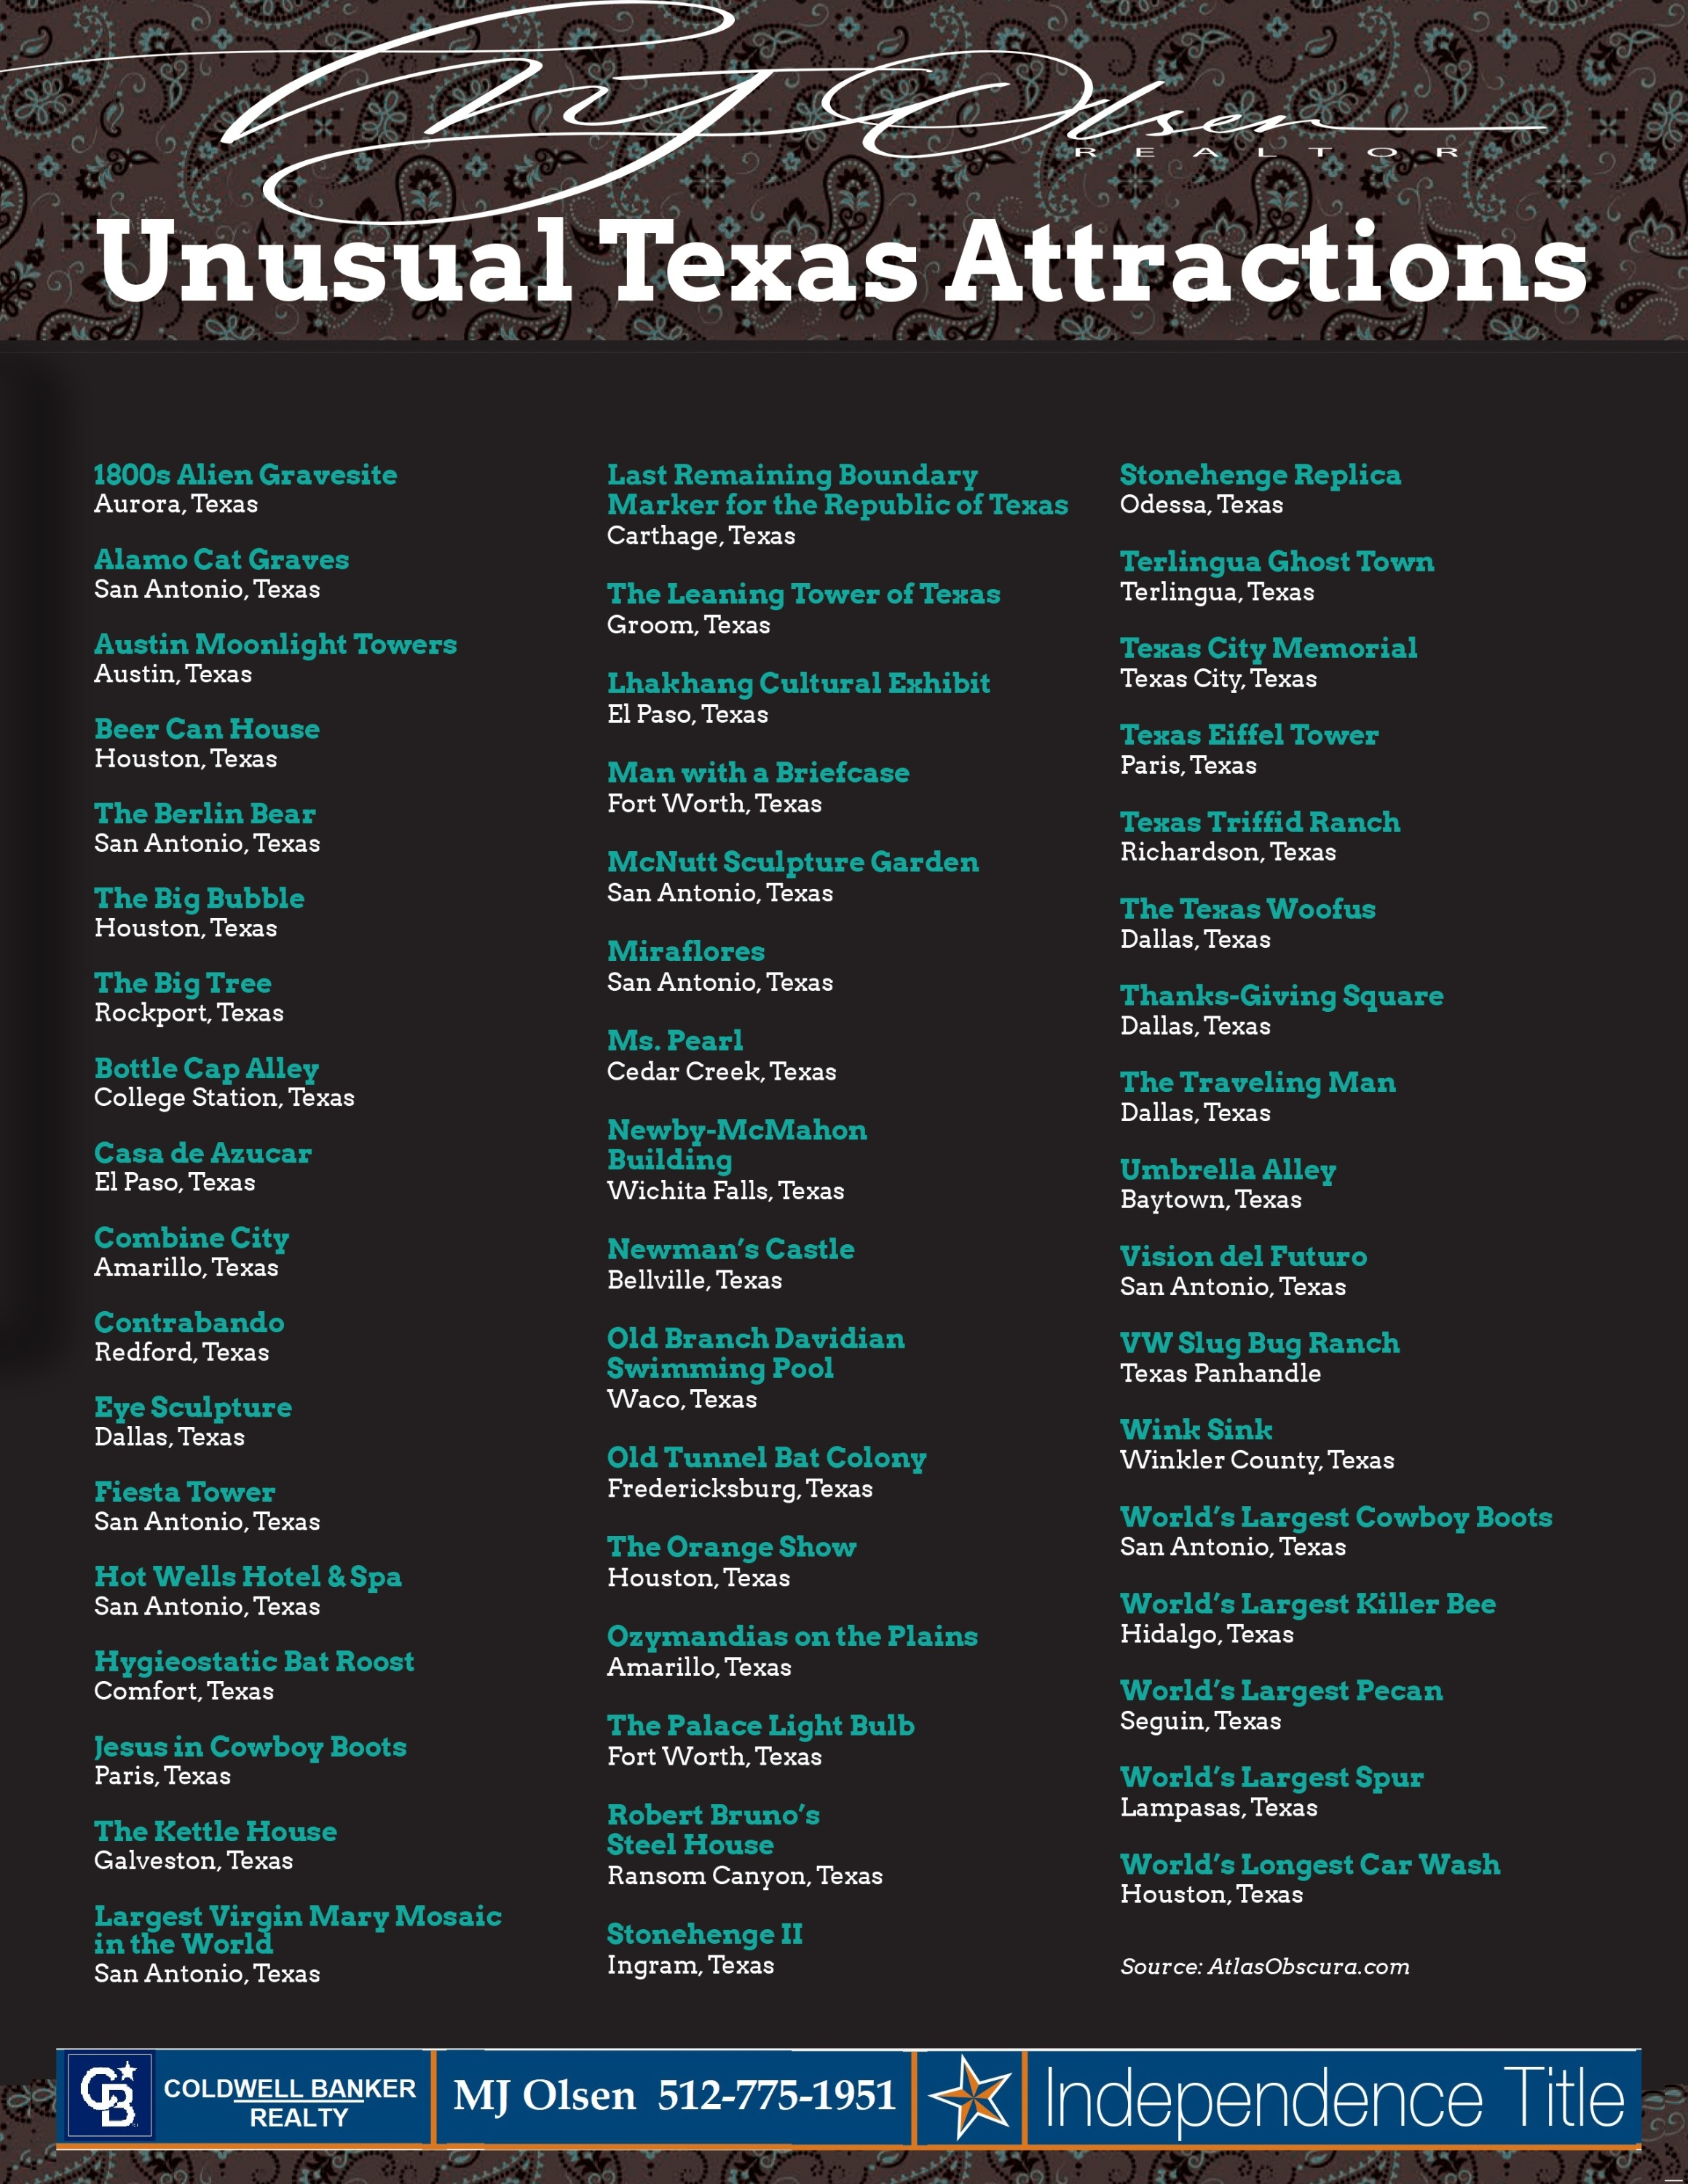 Texas attractions